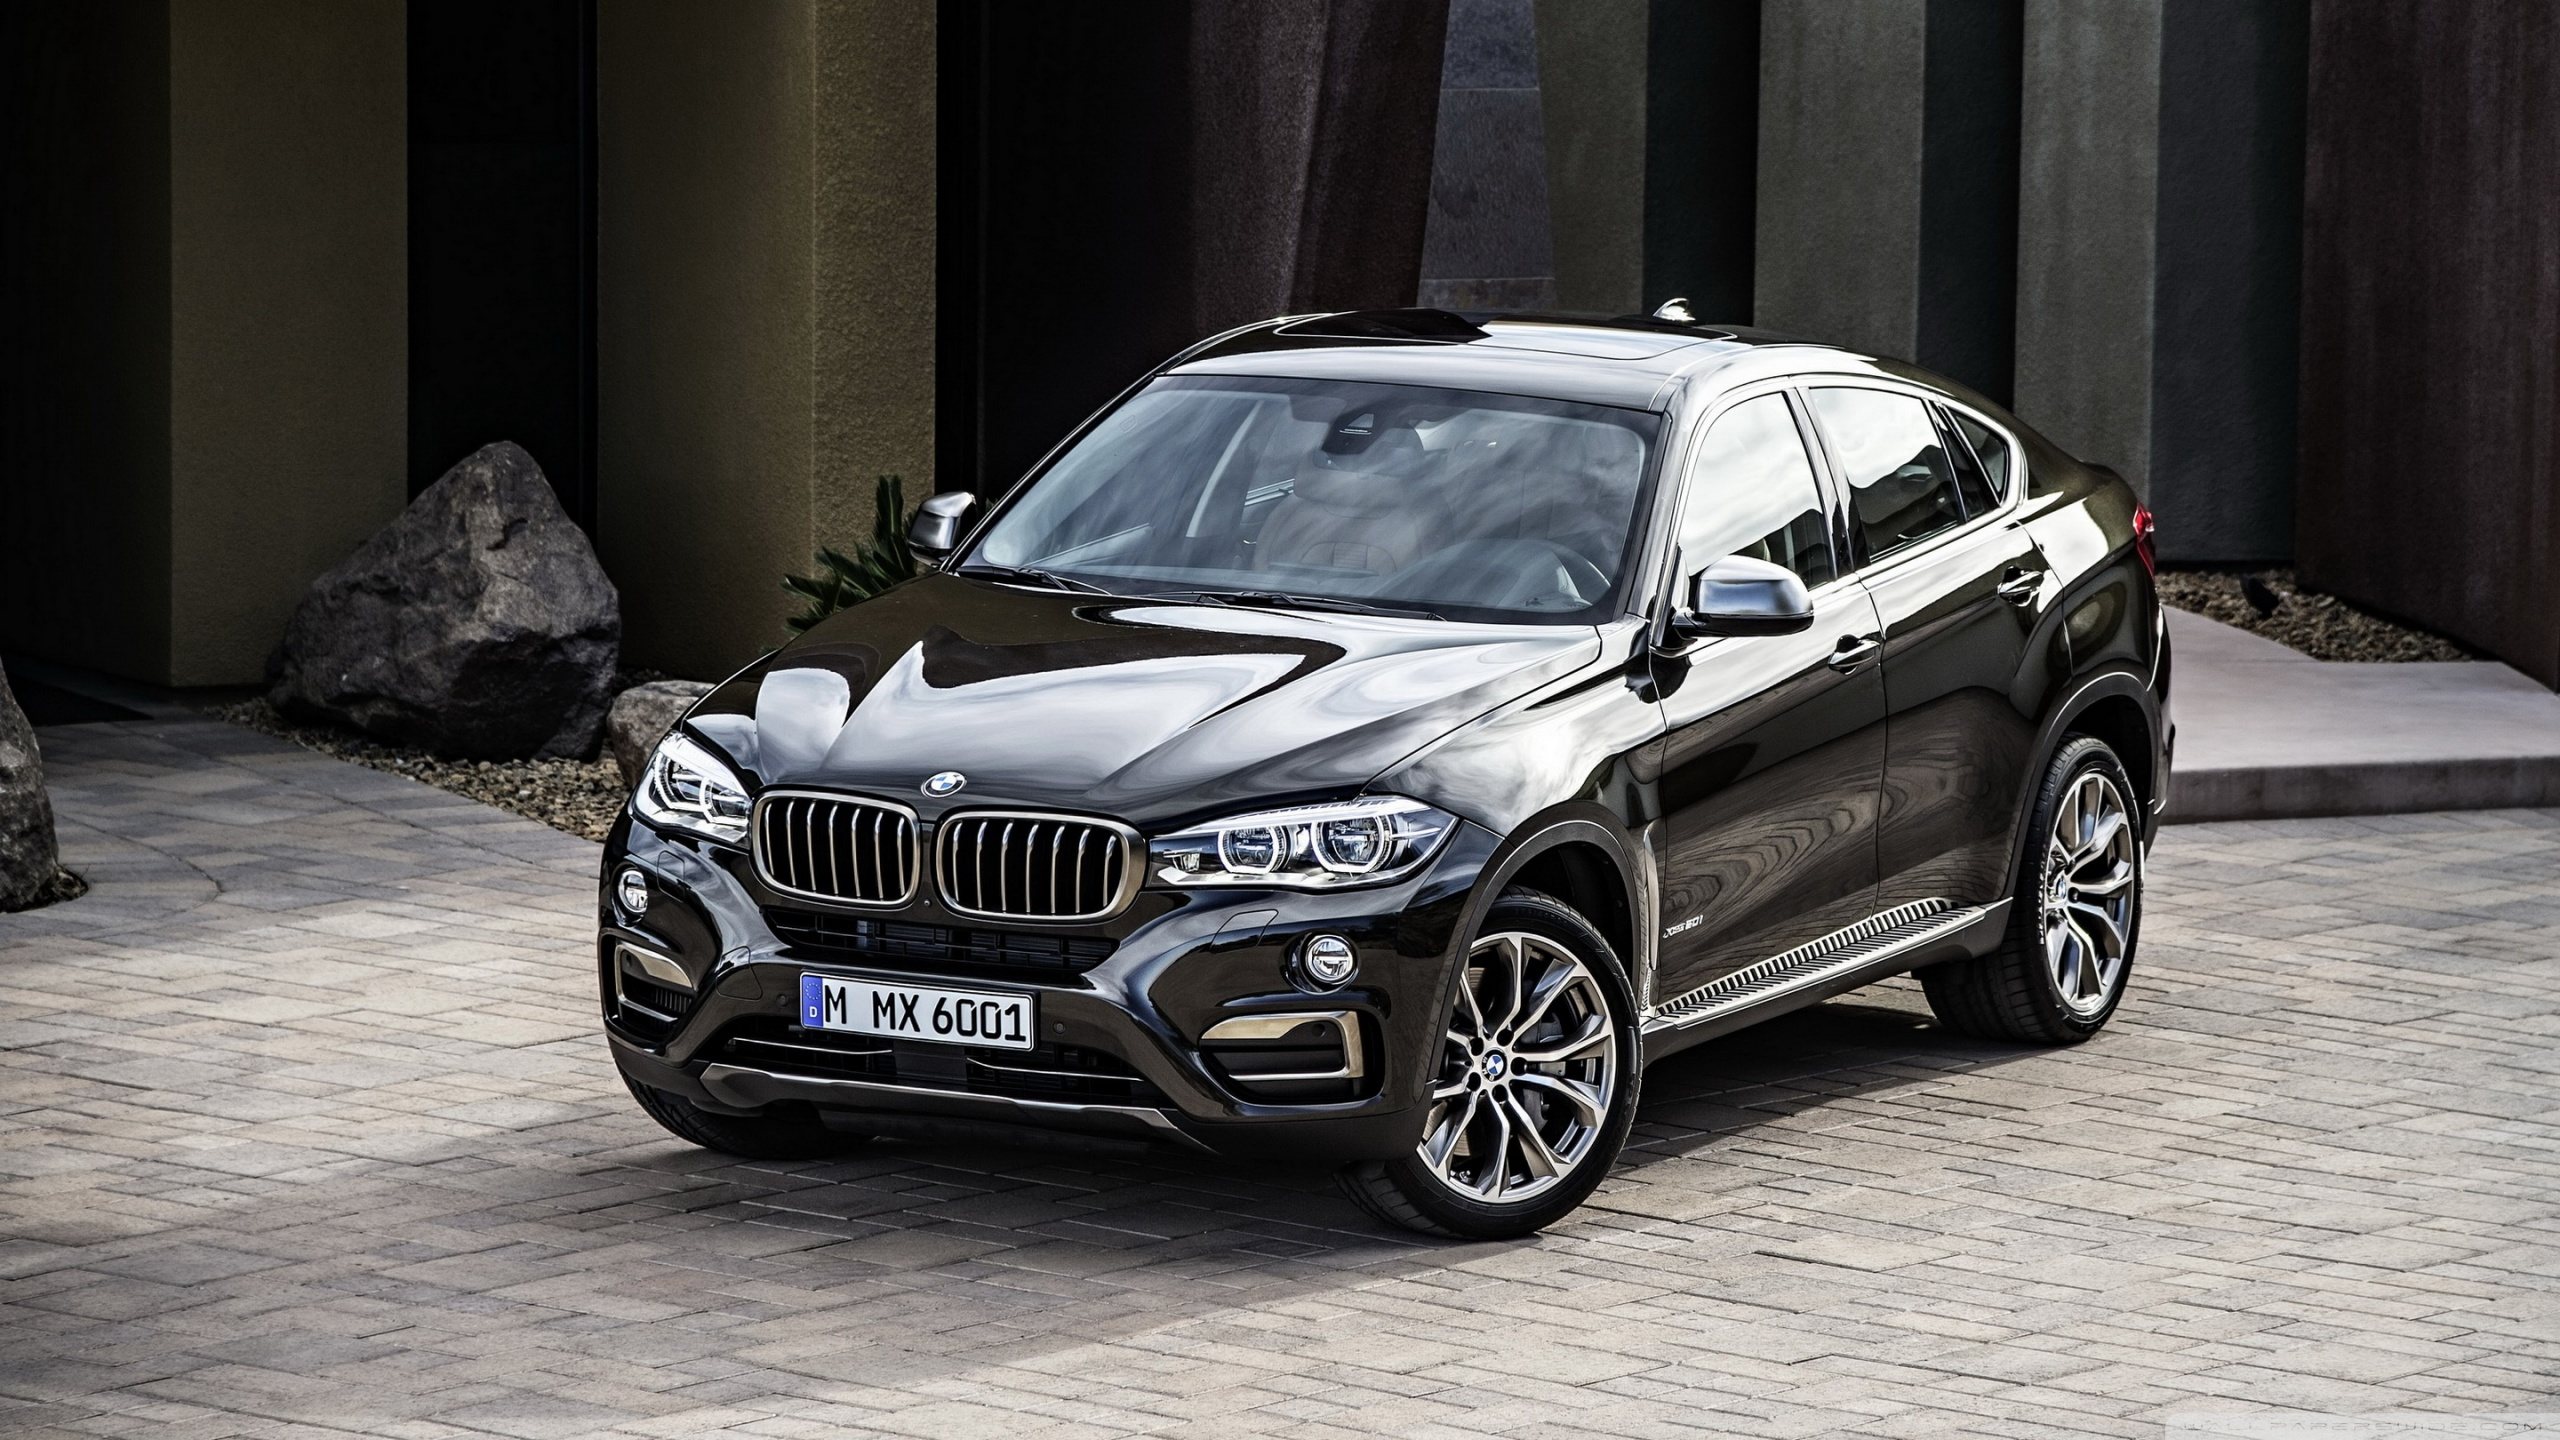 2560x1440 - BMW X6 Wallpapers 9